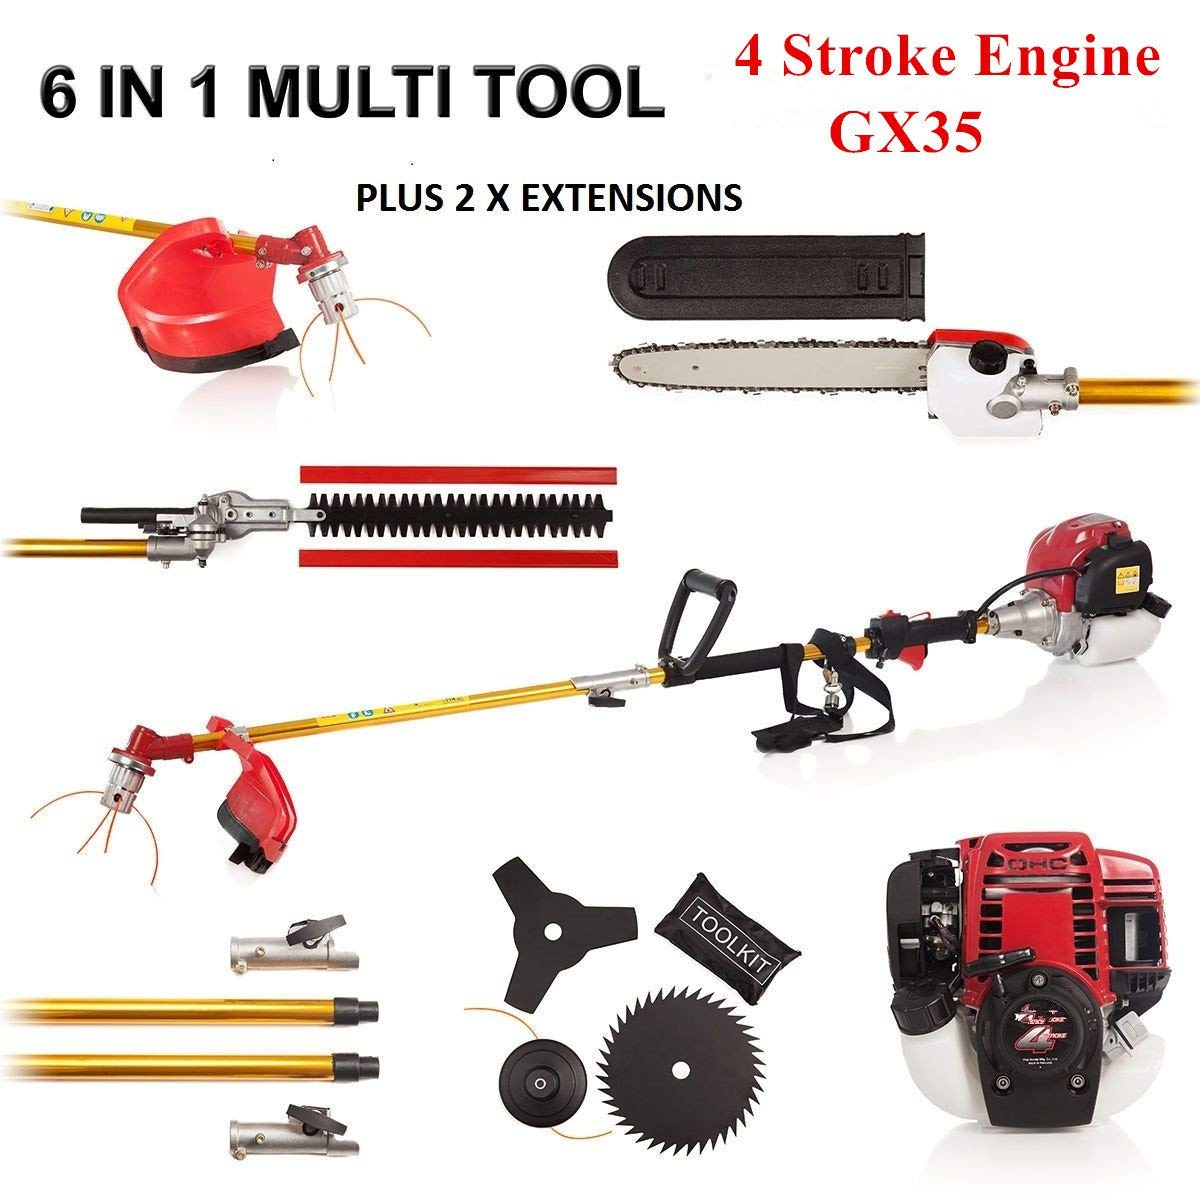 FENGKE 4STROKE 6 in1 Grass Cutting Multi Tool Garden Set: Chainsaw Trimmer Strimmer Brush Cutter